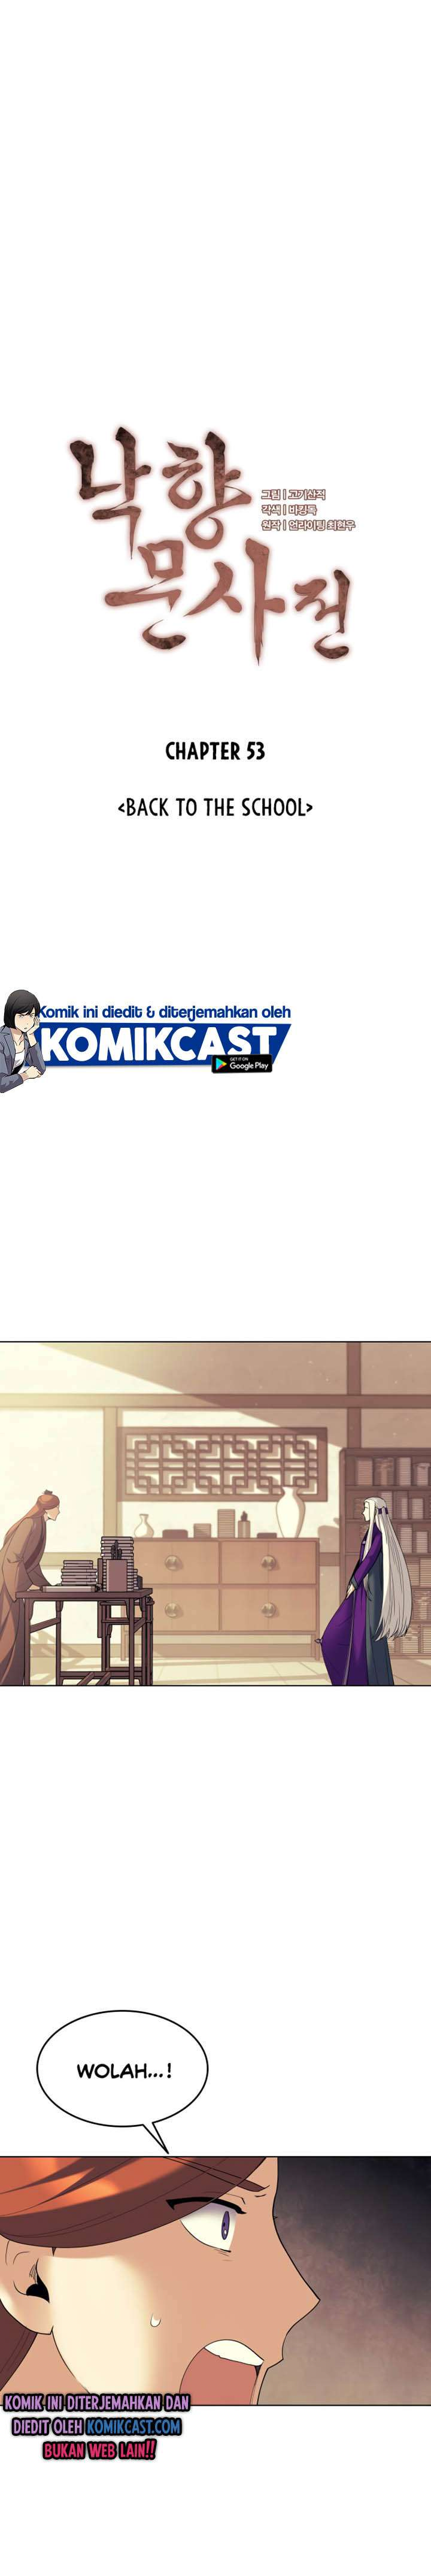 Tale of a Scribe Who Retires to the Countryside Chapter 53 Bahasa Indonesia page 5